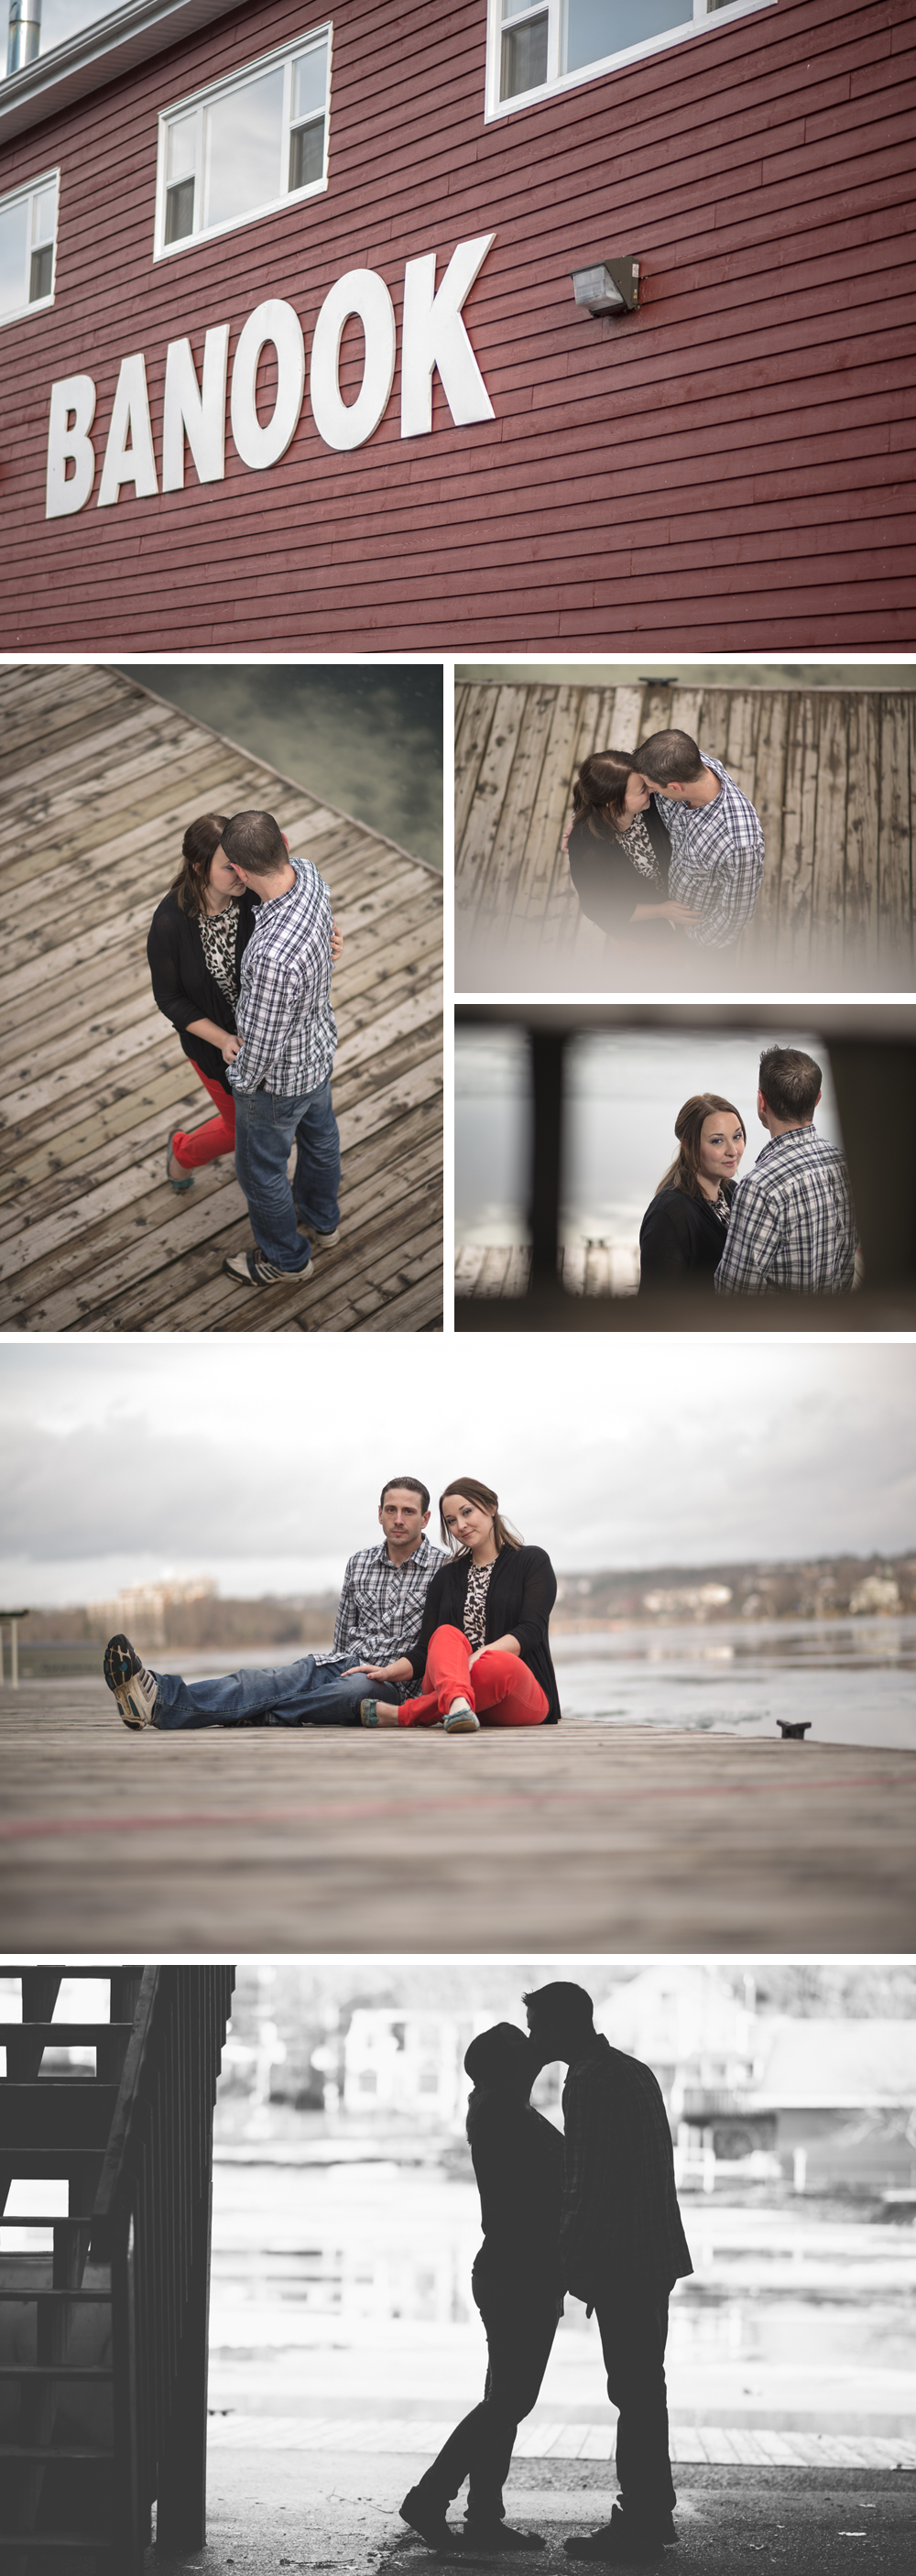 halifax wedding photographer one blue fish lake banook dartmouth NS